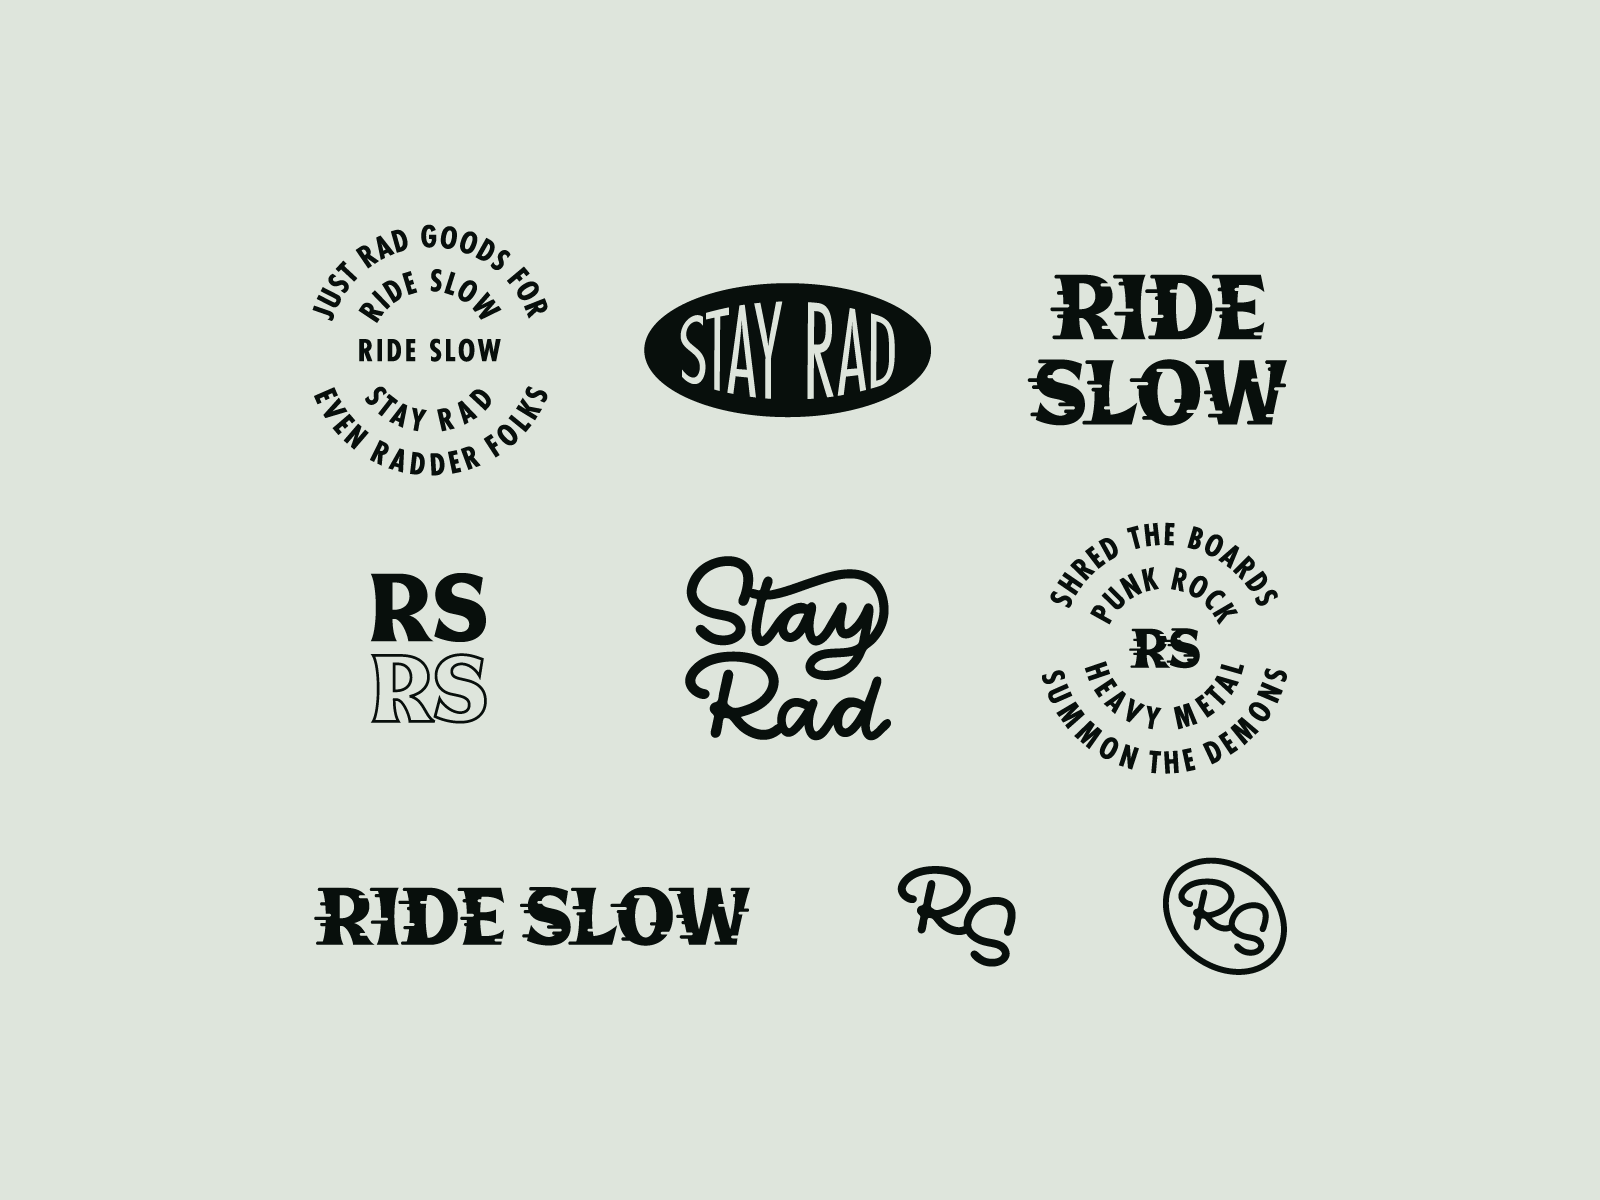 Ride Slow Brand Crumbs Riding Slow Fortune